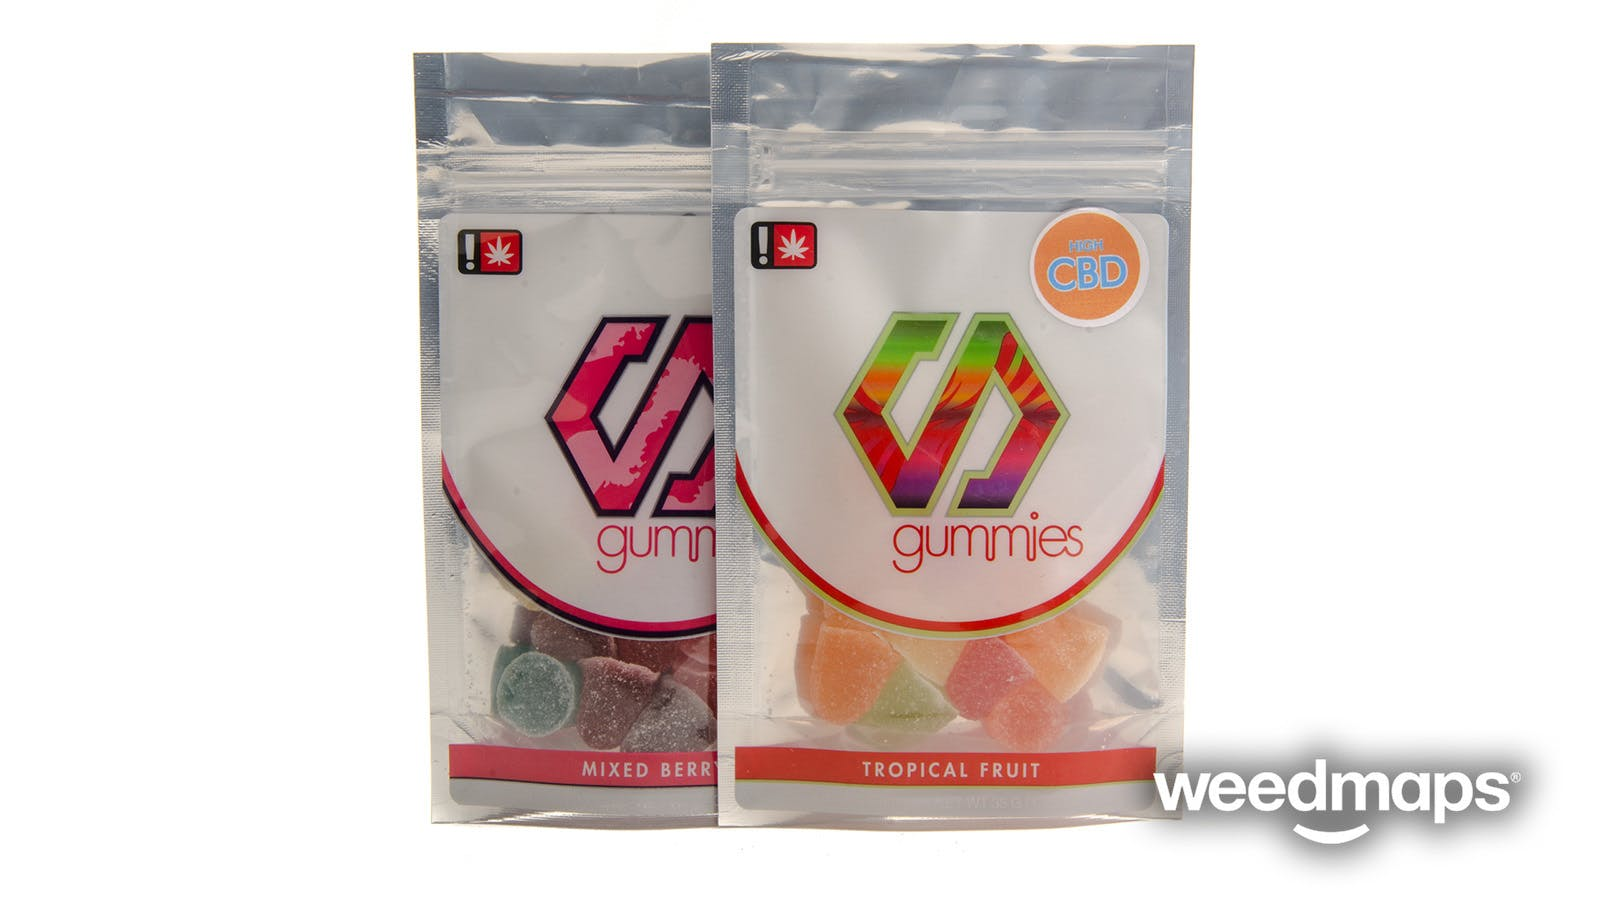 marijuana-dispensaries-green-room-campus-in-corvallis-edible-shango-gummies-cbd